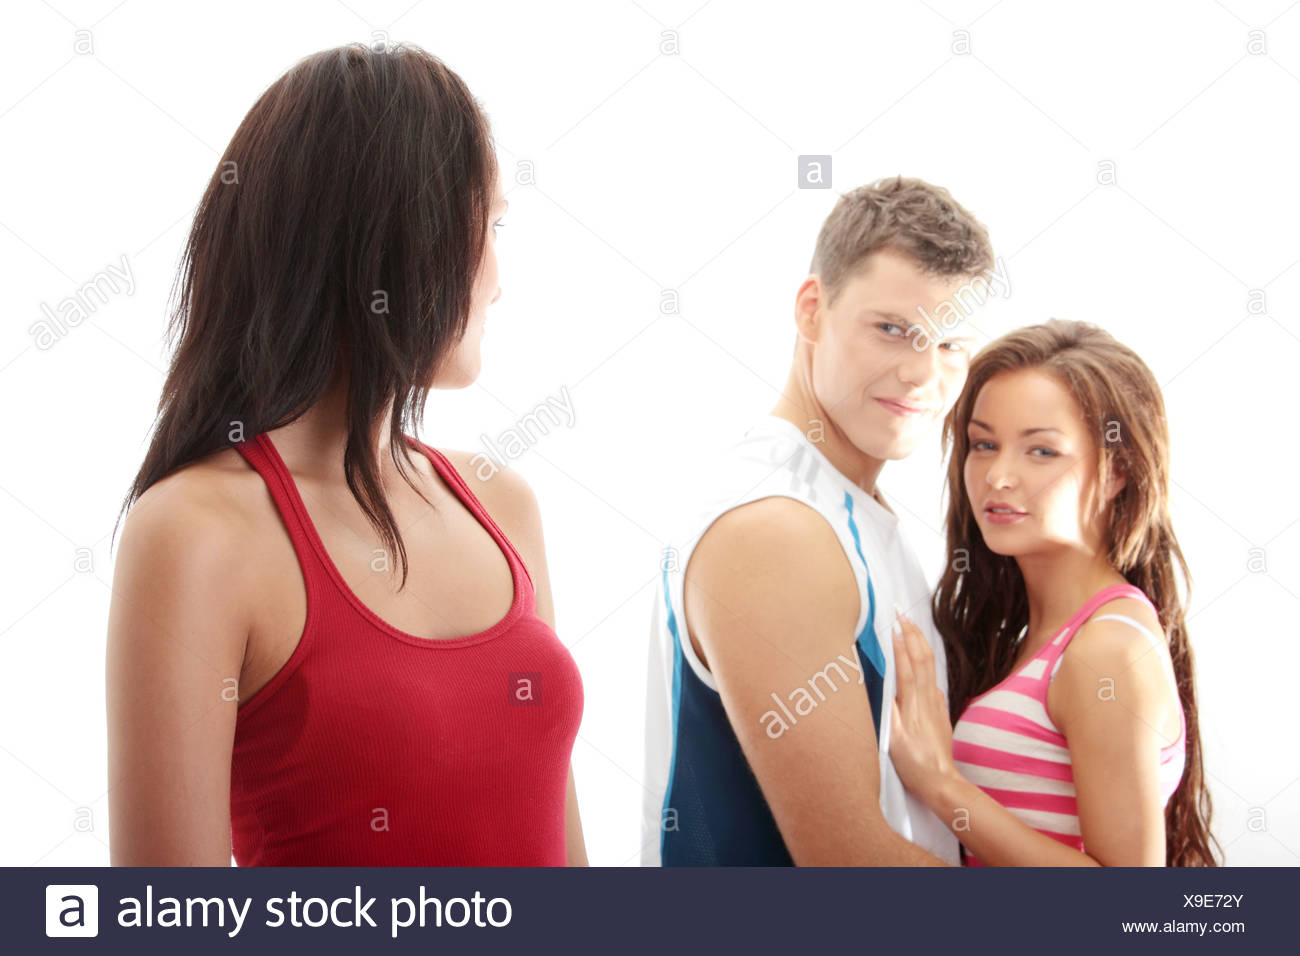 Unfaithful boyfriend concept. Boyfriend is flirting with another girl. Isolated on white background - Stock Image